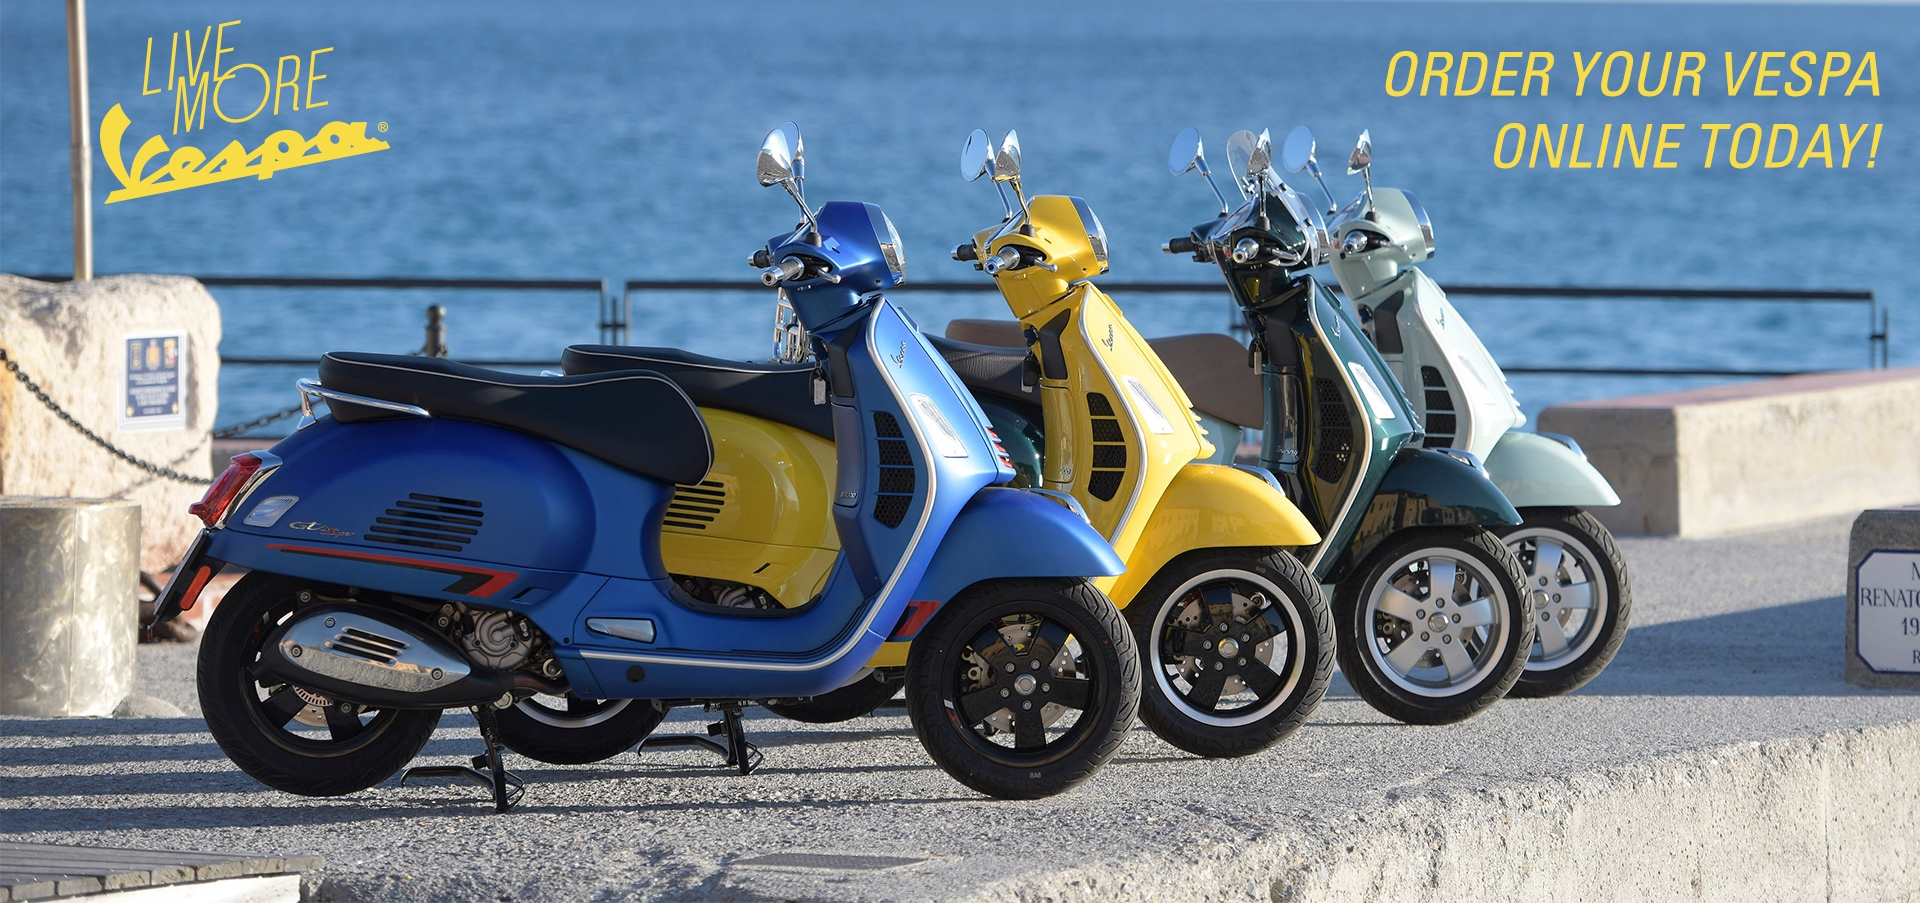 Www Ets Thomas Fr vespa usa: official site - vespa